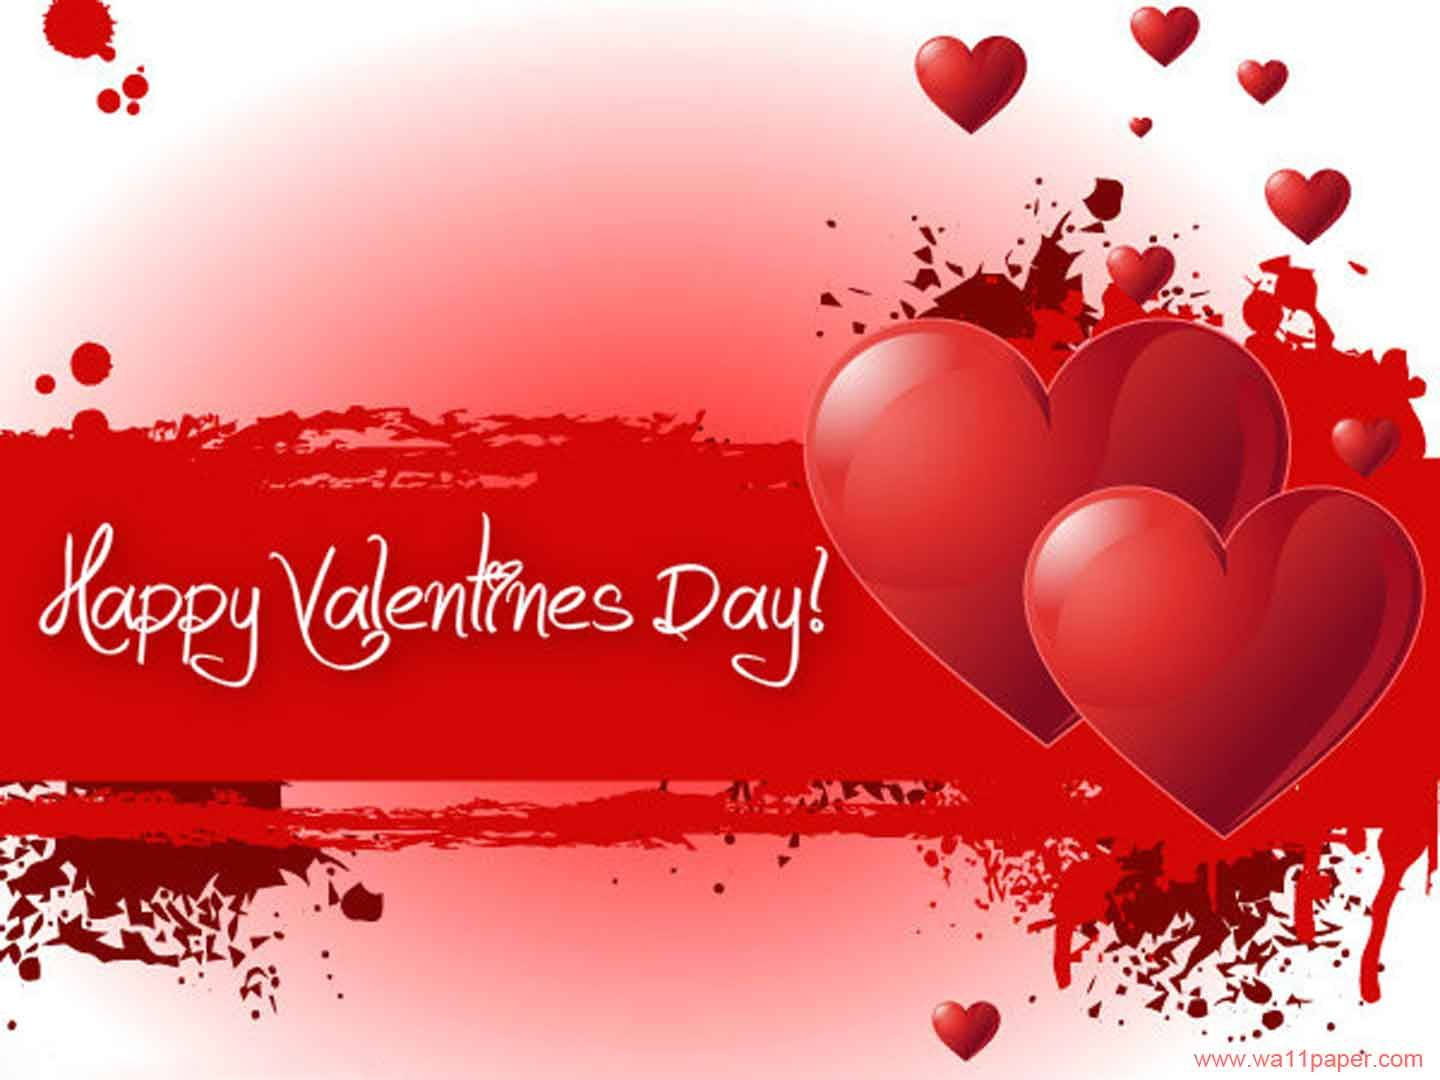 Red Valentines Day Greetings Cards For Facebook HD Wallpaper – Nice Valentines Cards